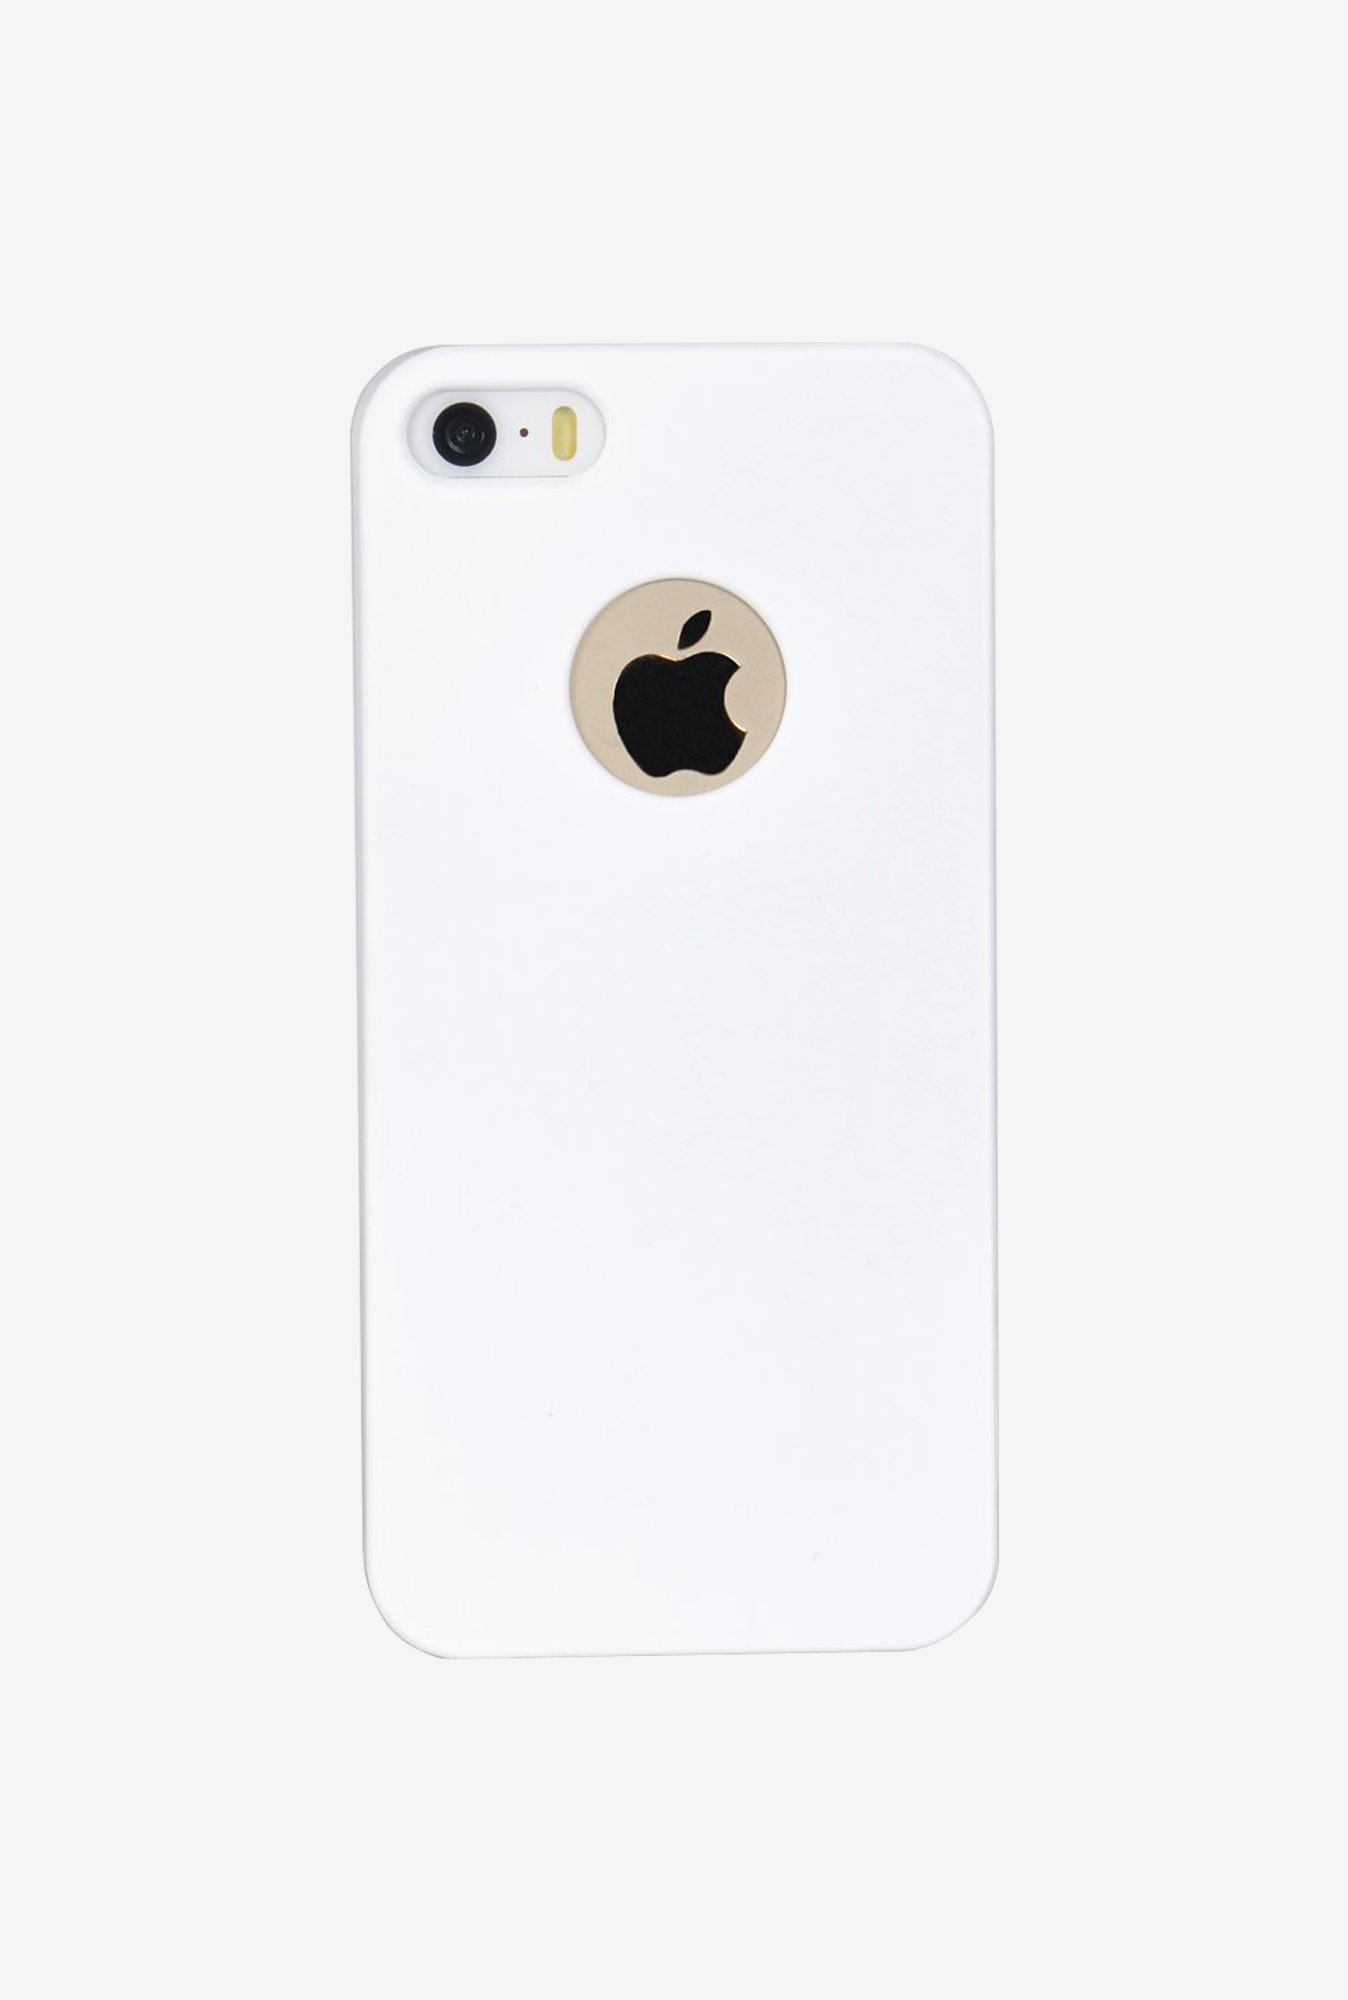 iAccy IP5S007 Snap Case White for iPhone 5/5S